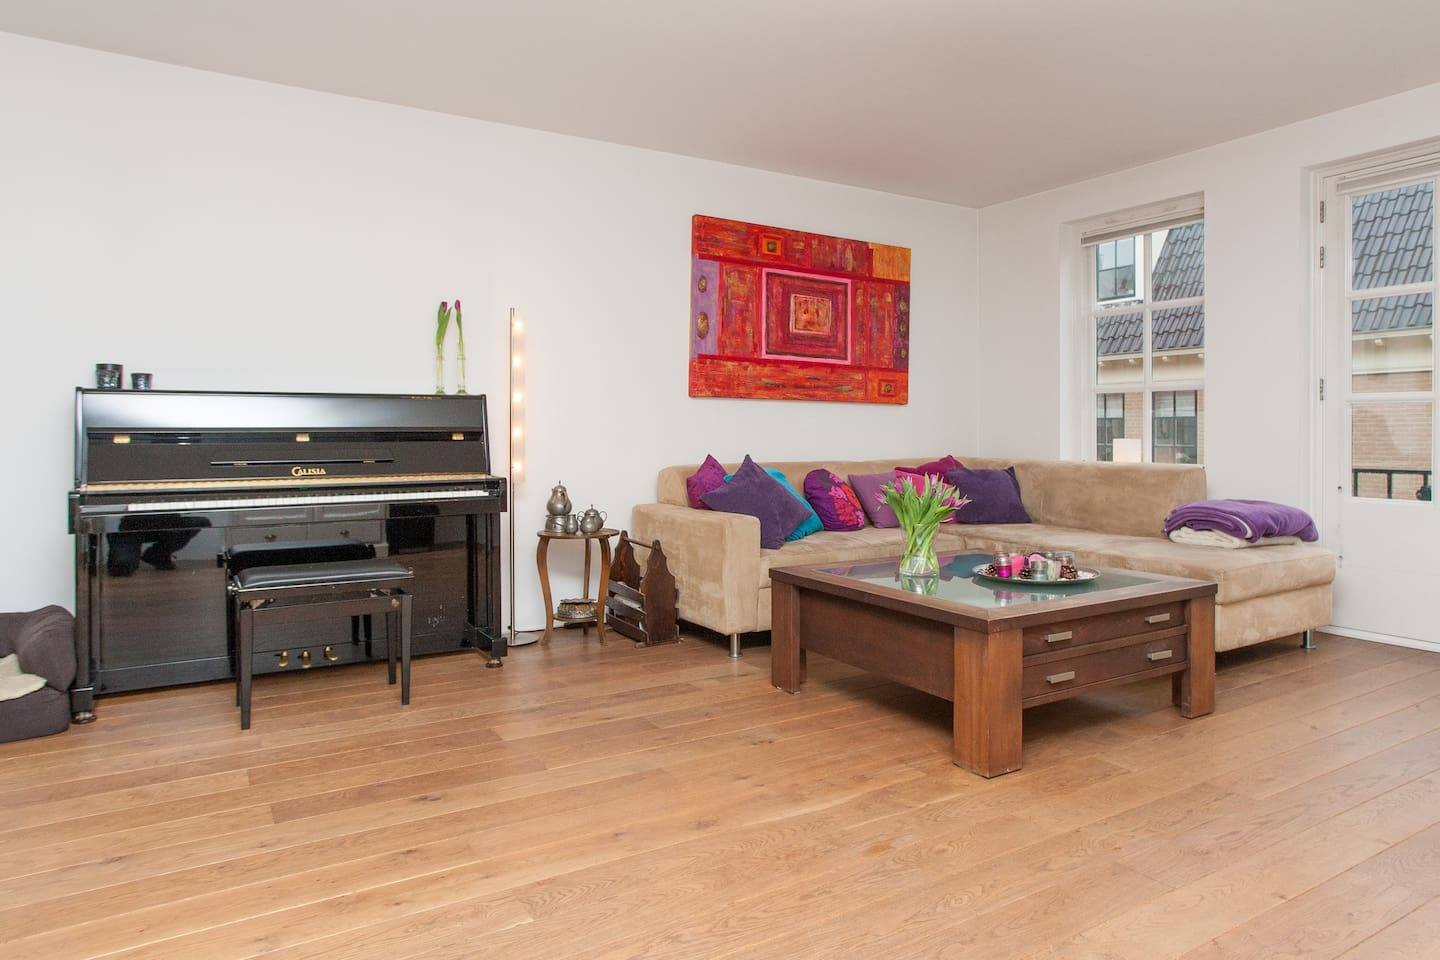 Nice living room with enough space for 6 persons